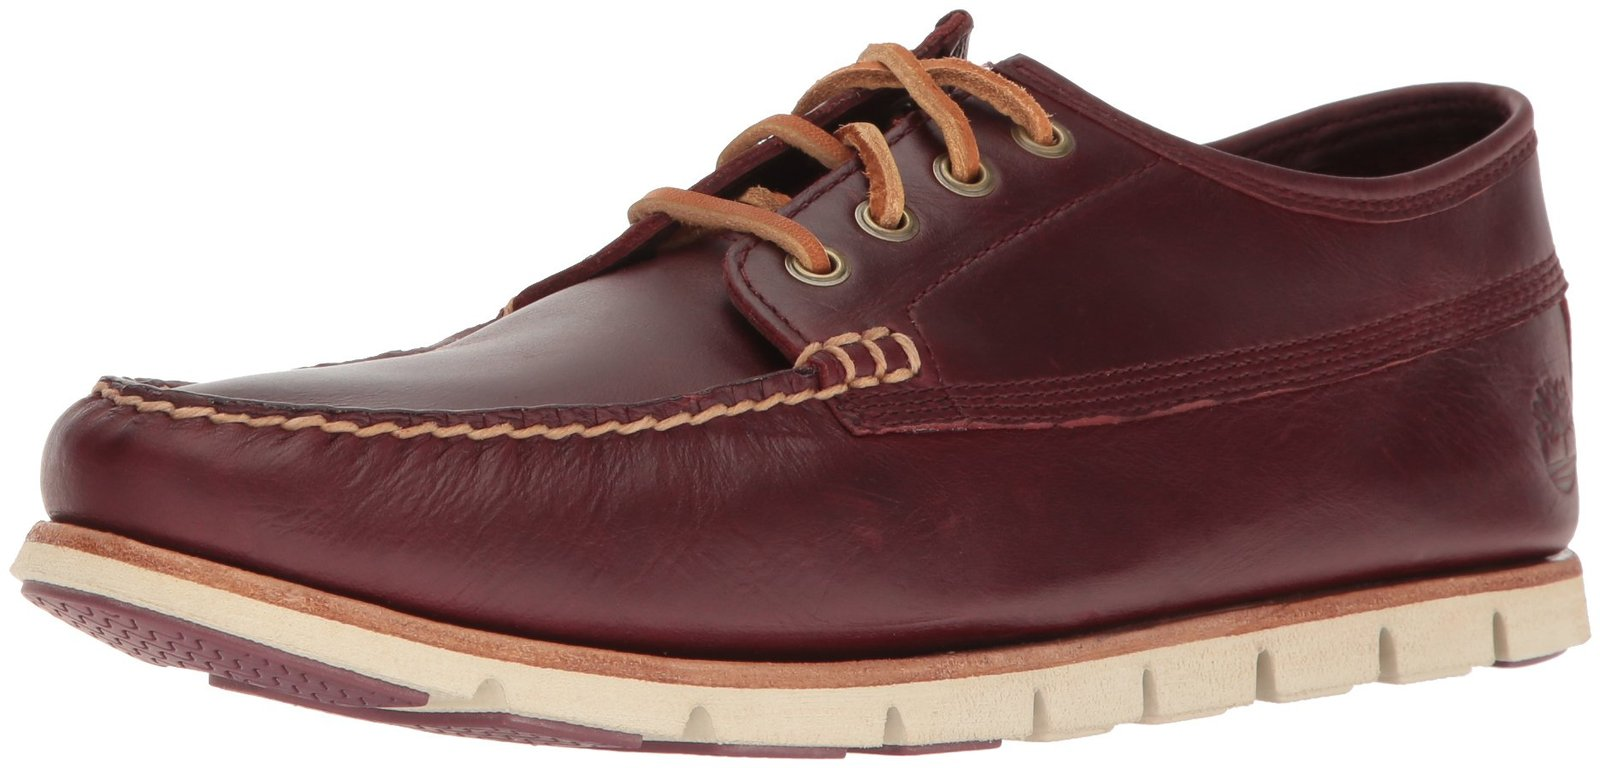 Timberland Men's Tidelands Ranger Moc Boat Shoe, Redwood Brando, 11 M US